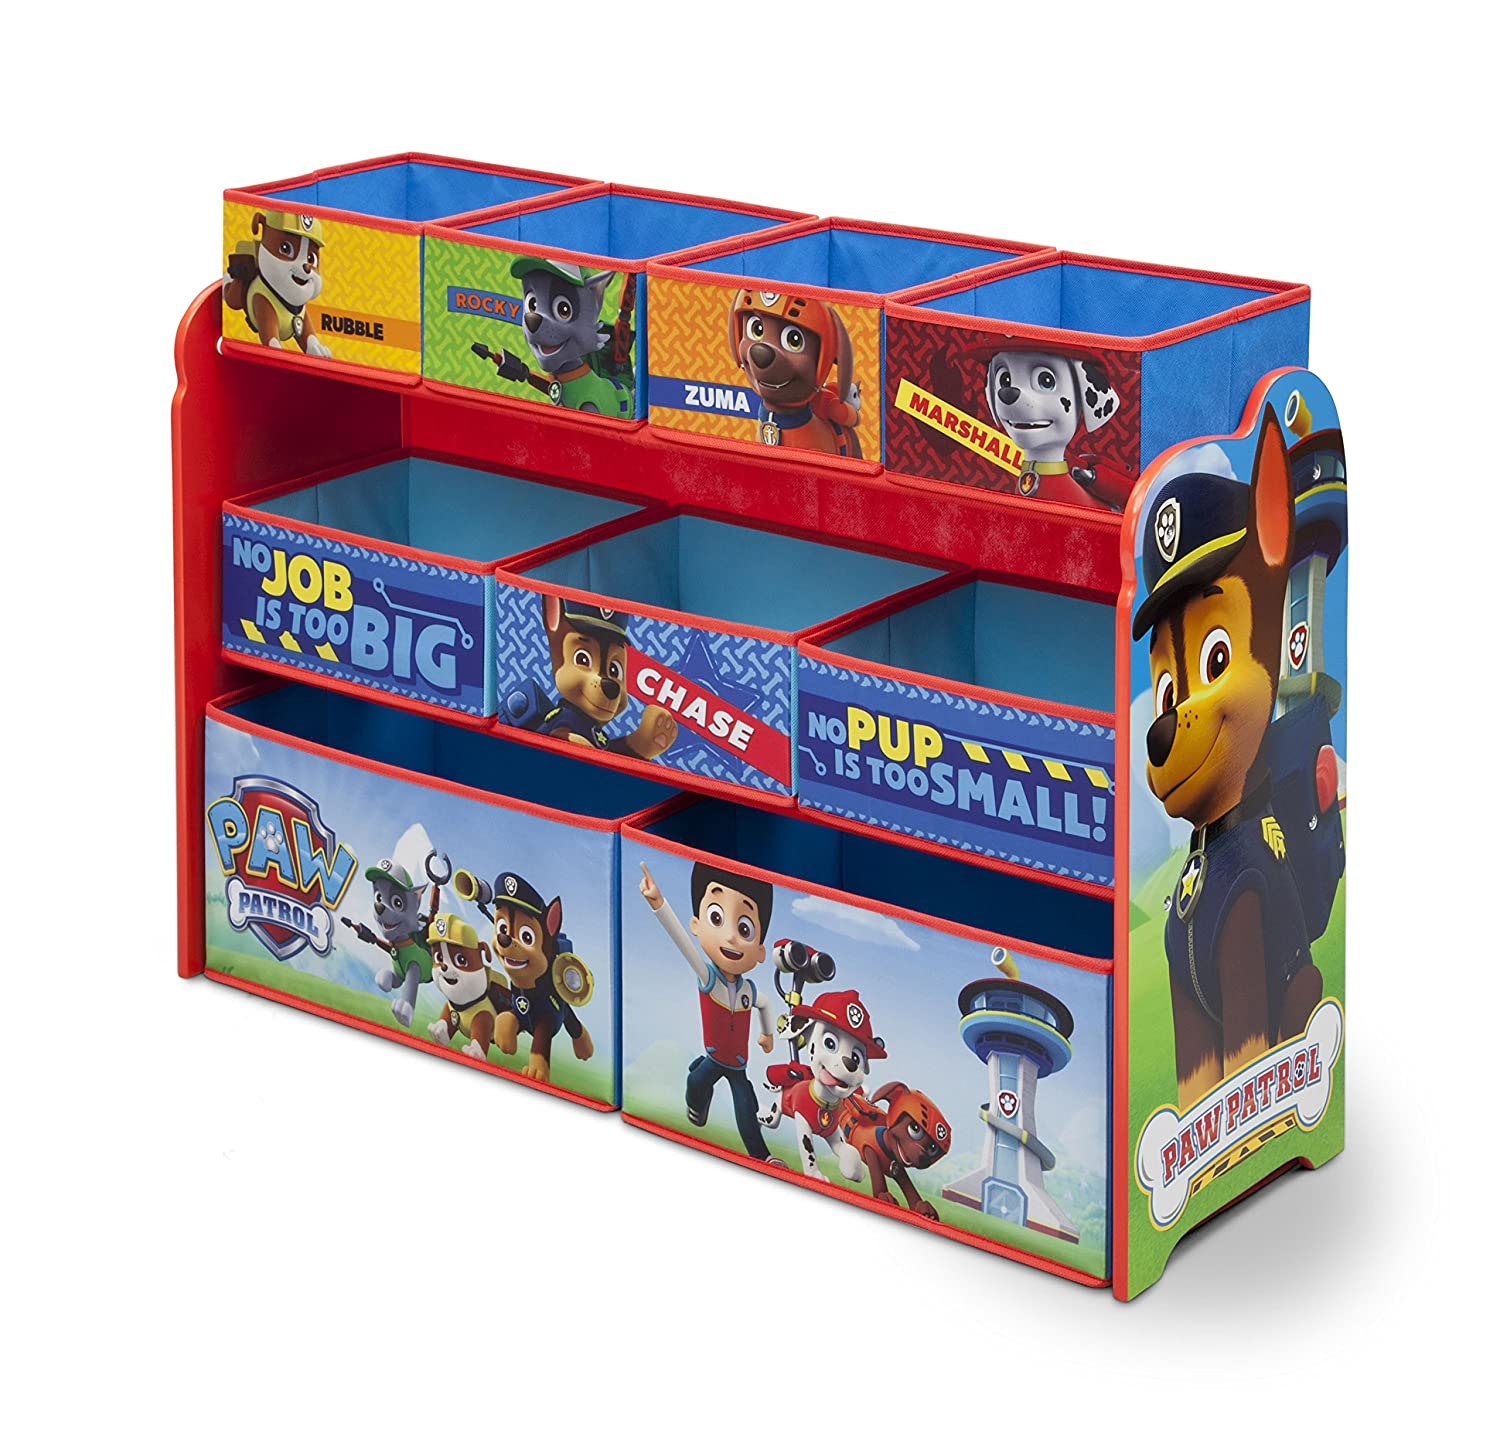 Nick Jr. Deluxe 9 Bin Toy Organizer, Paw Patrol Delta Children TB84418PW